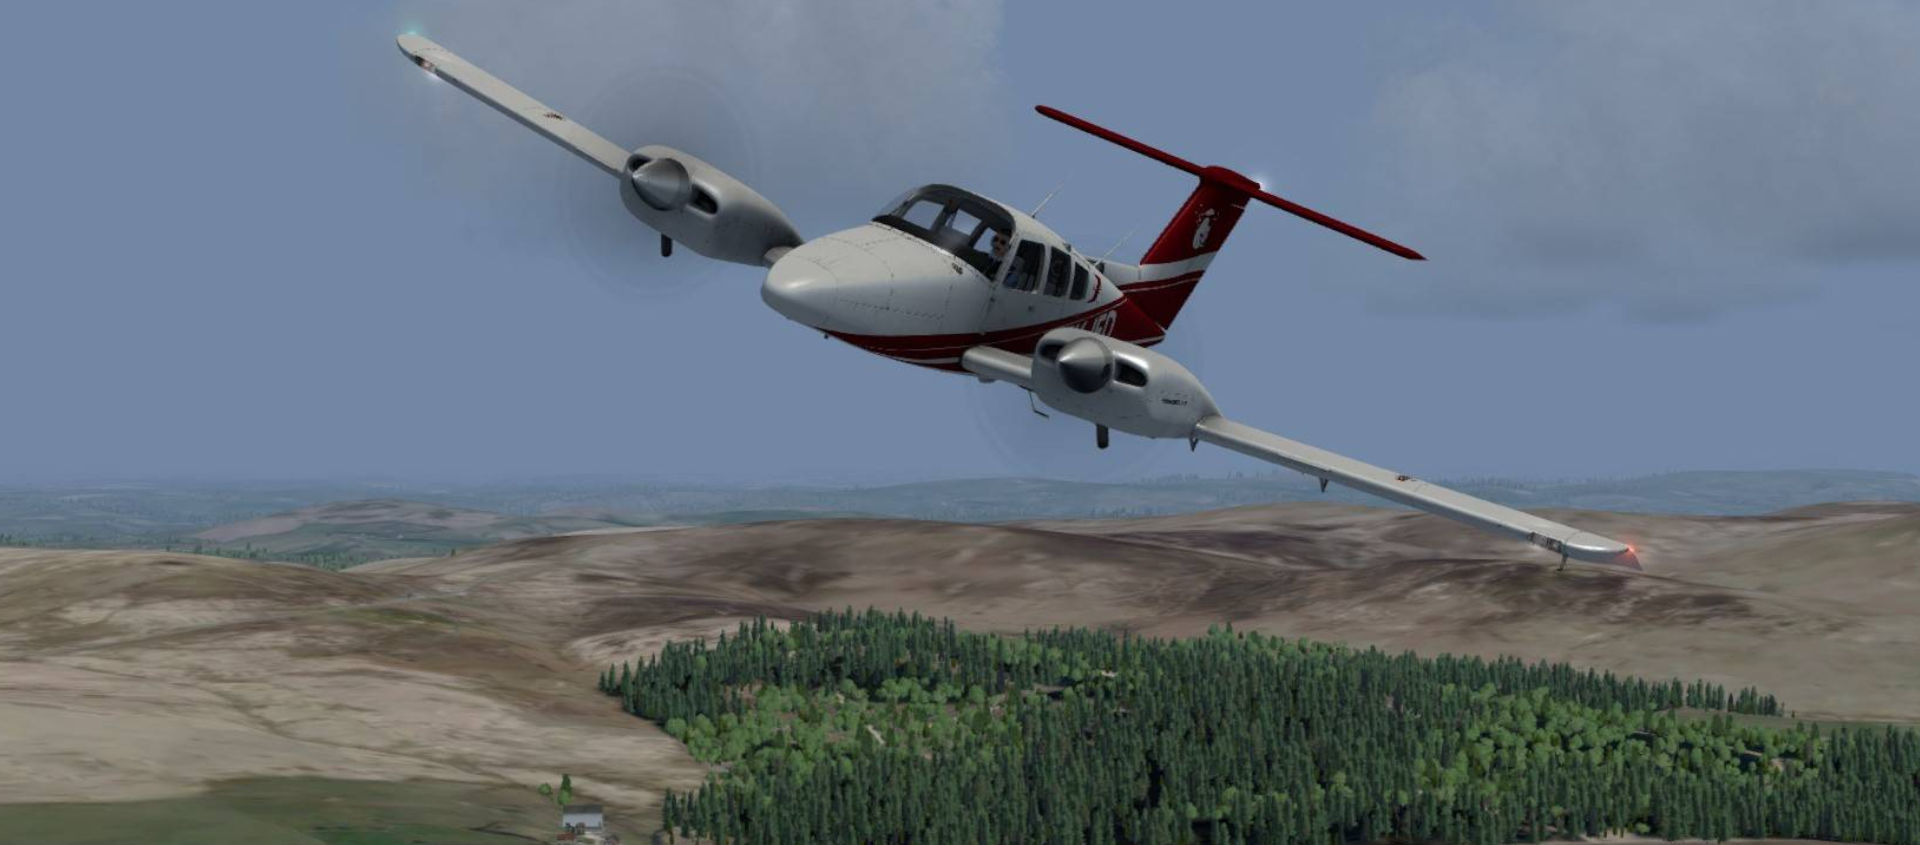 Just Flight VFR Real Scenery Vol 1 Release